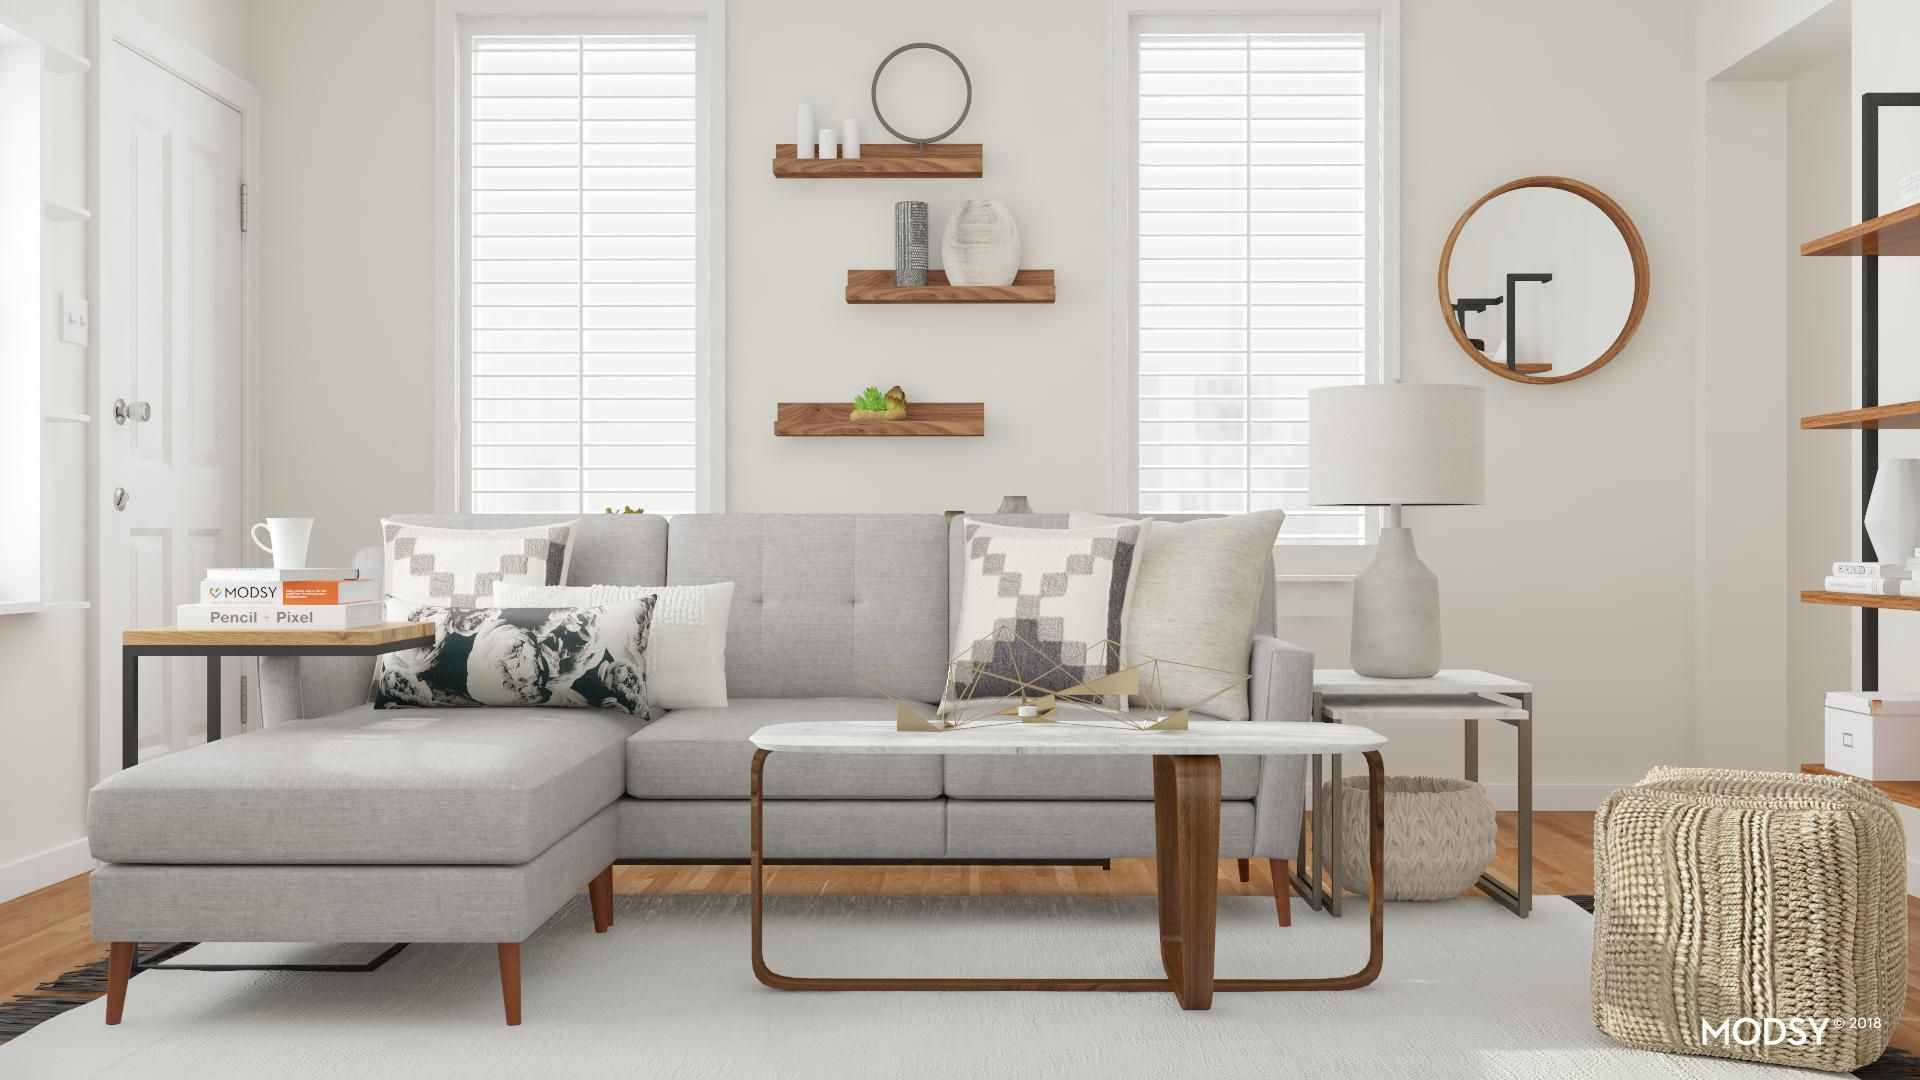 Modsy Review Is This New Interior Room Design Service Worth It